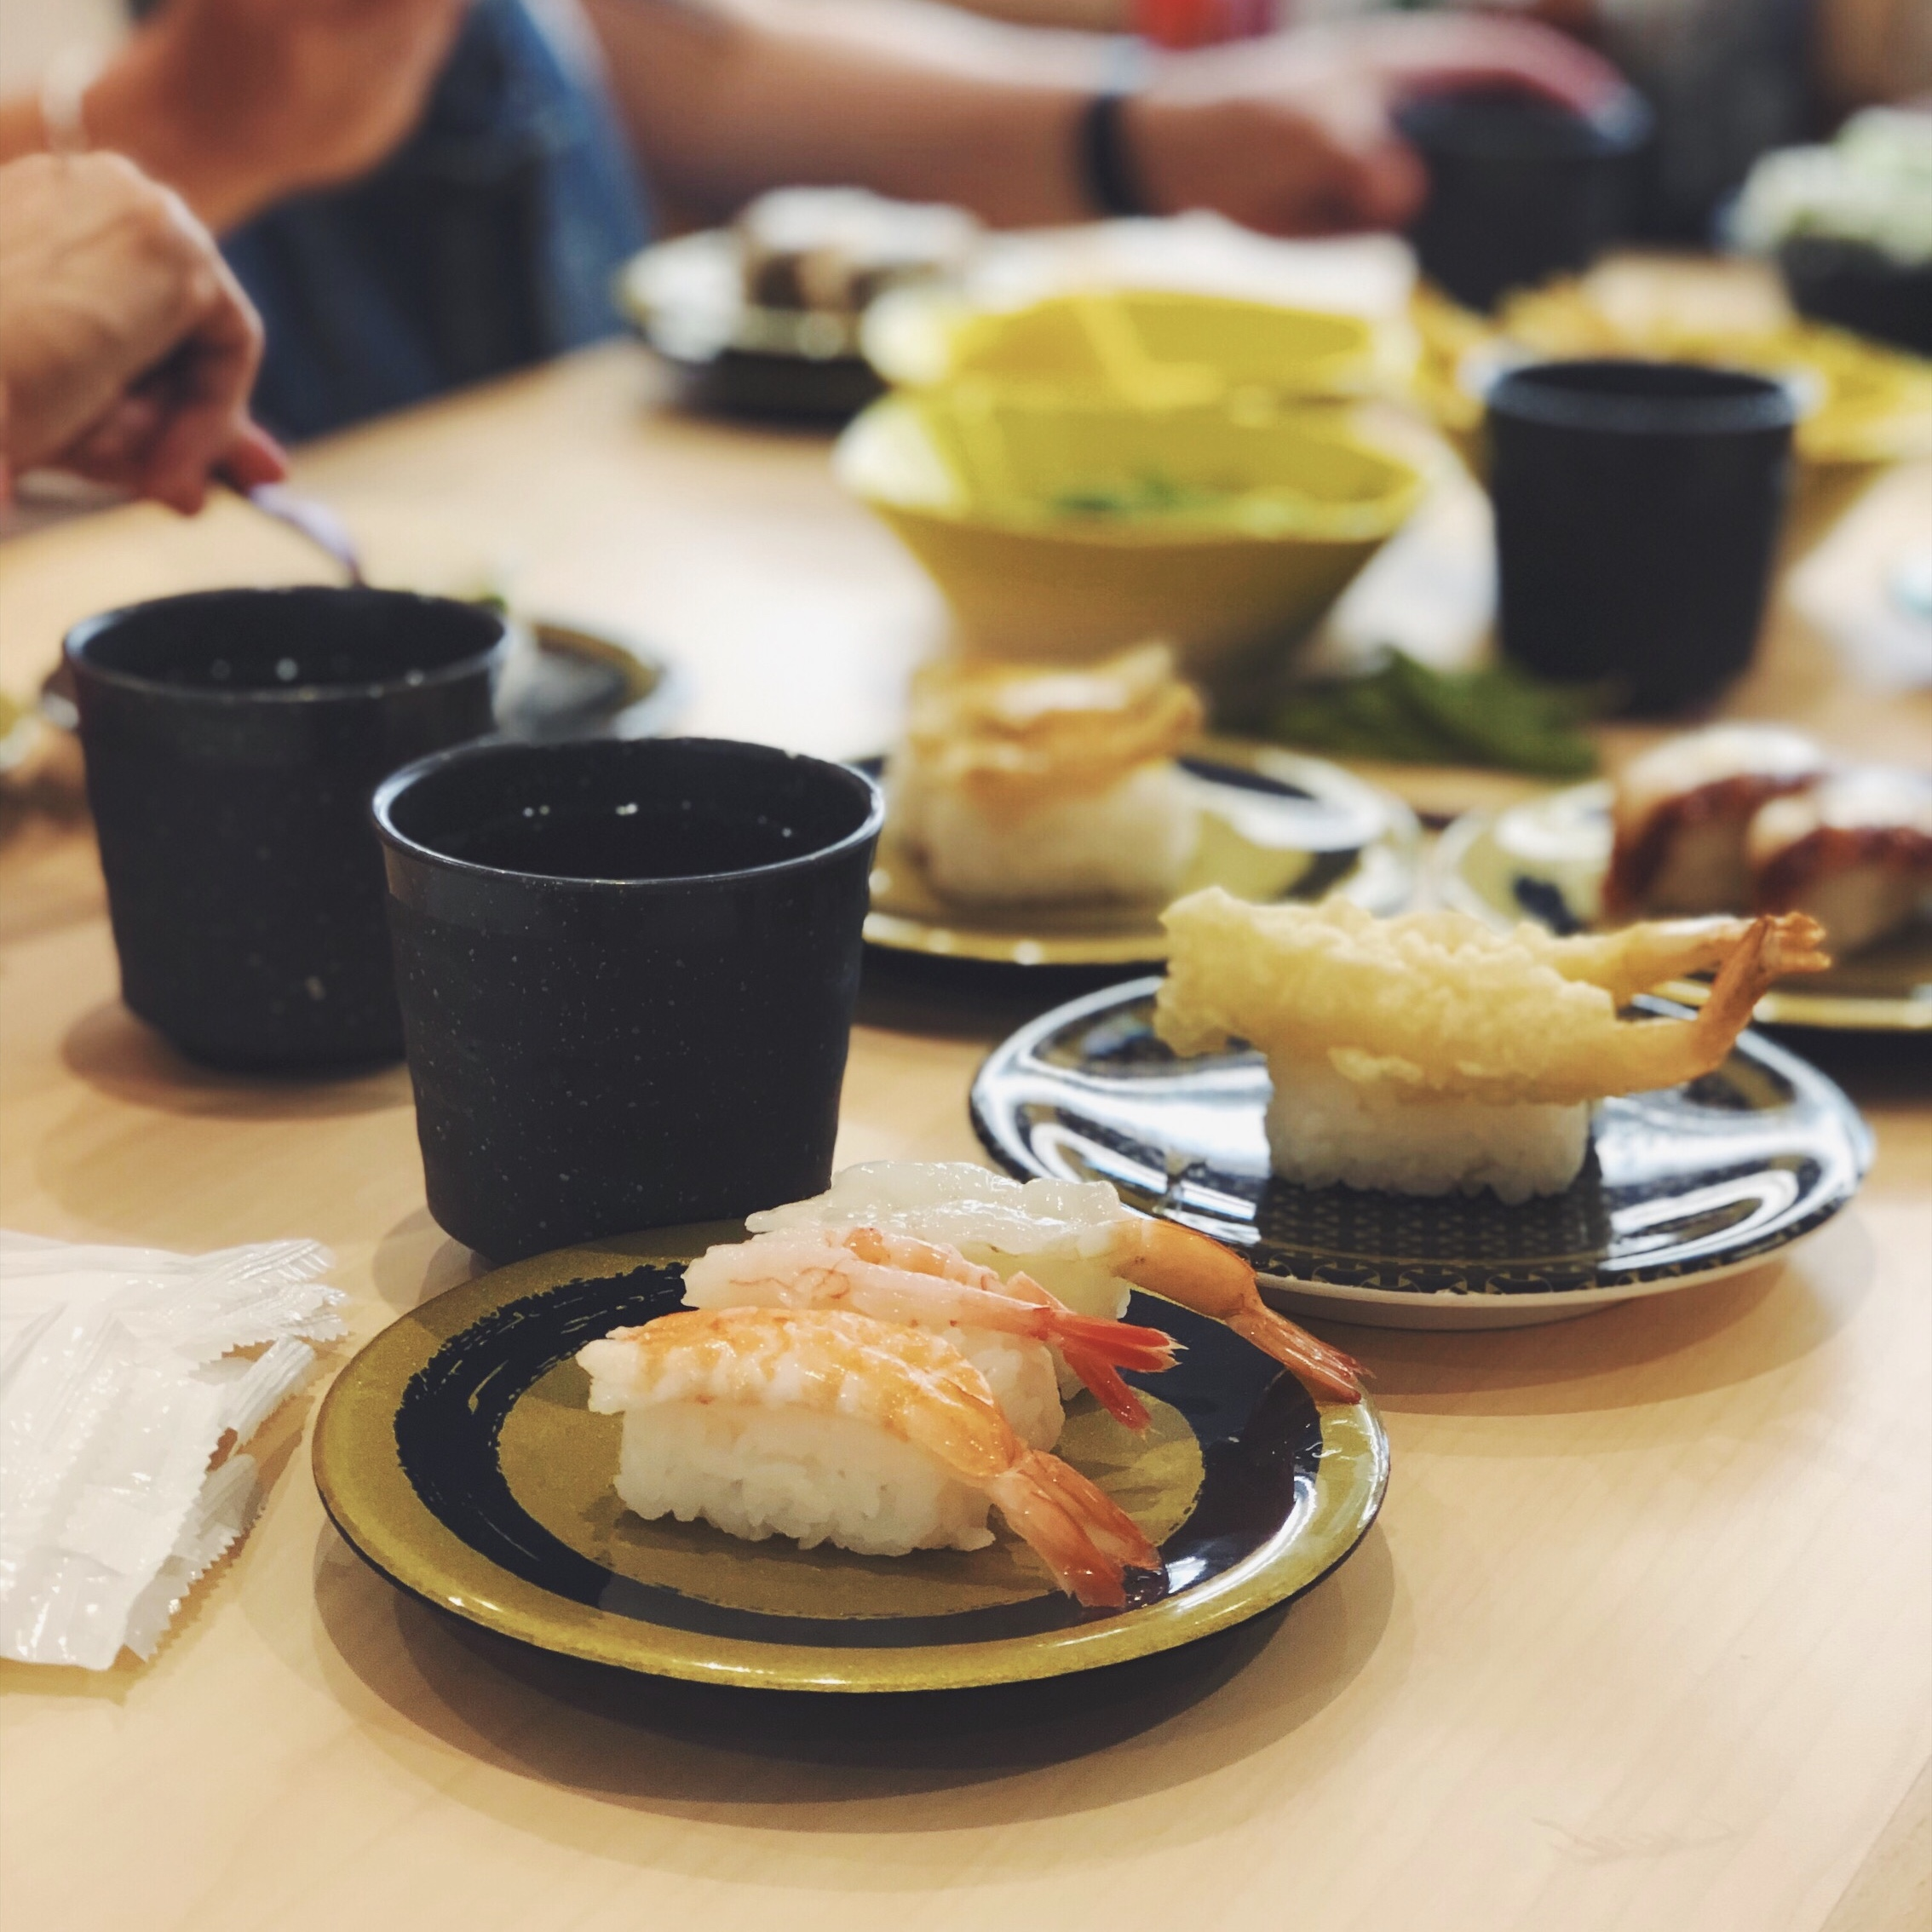 OUR FIRST MEAL IN JAPAN THIS TRIP? SUSHI GO-ROUND